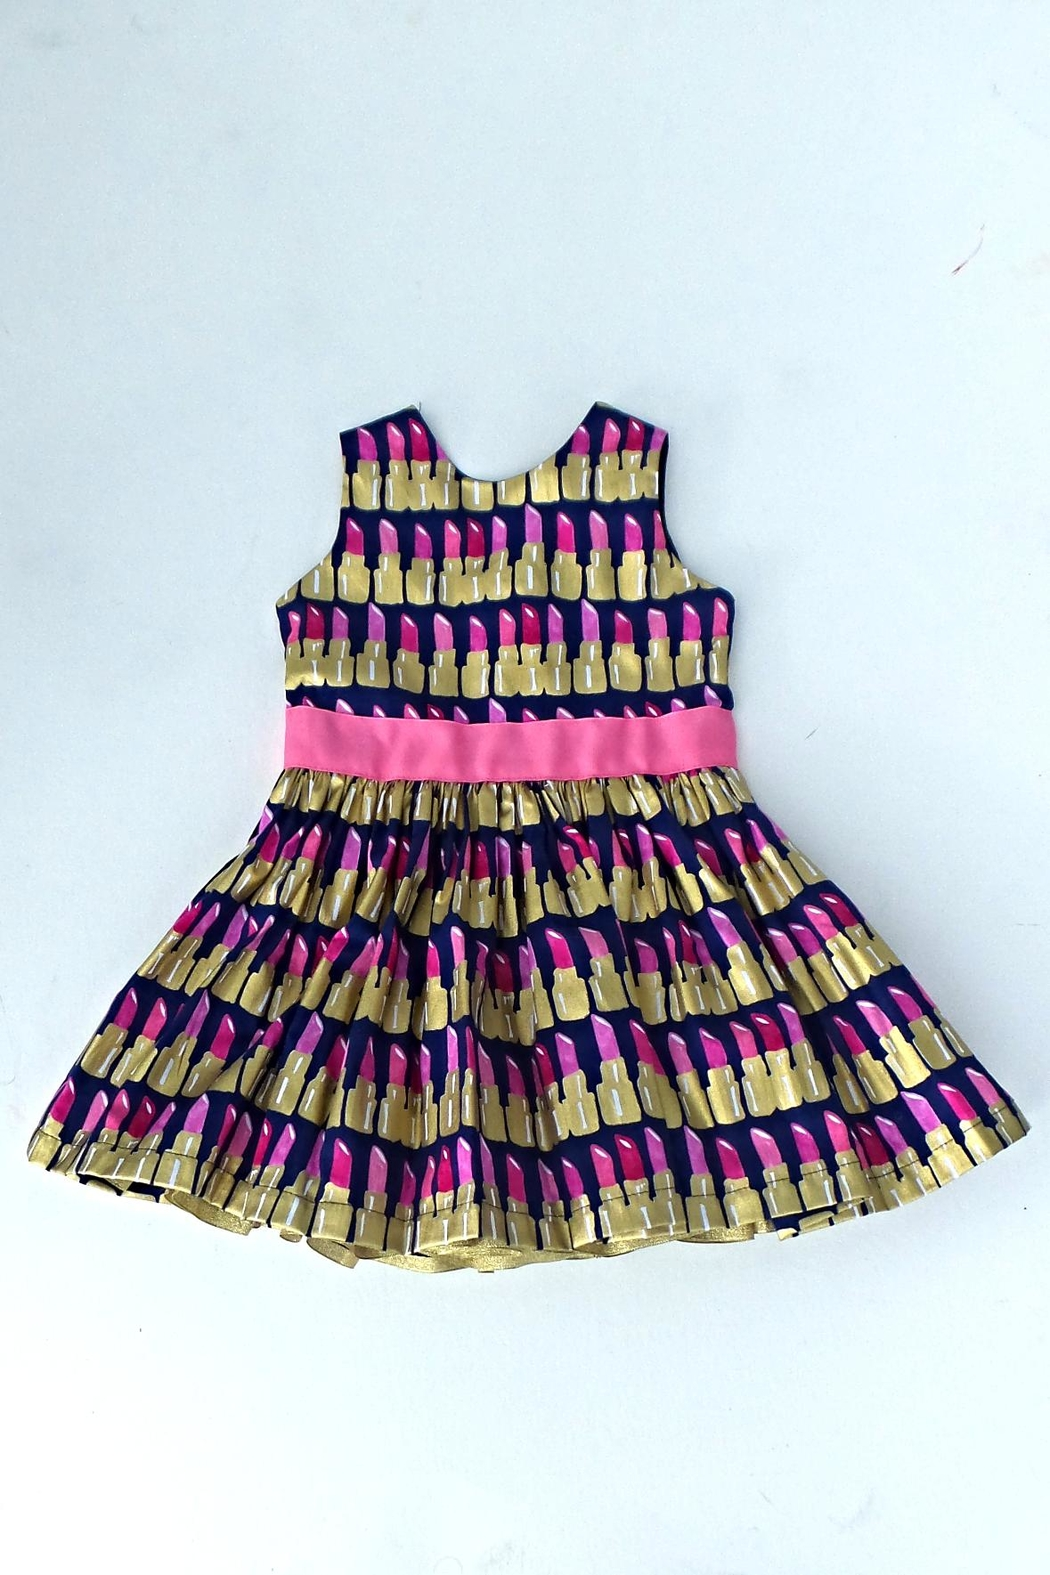 320a2d480395 Fiveloaves twofish Lipstick Party Dress from Florida by Warm Hearts ...